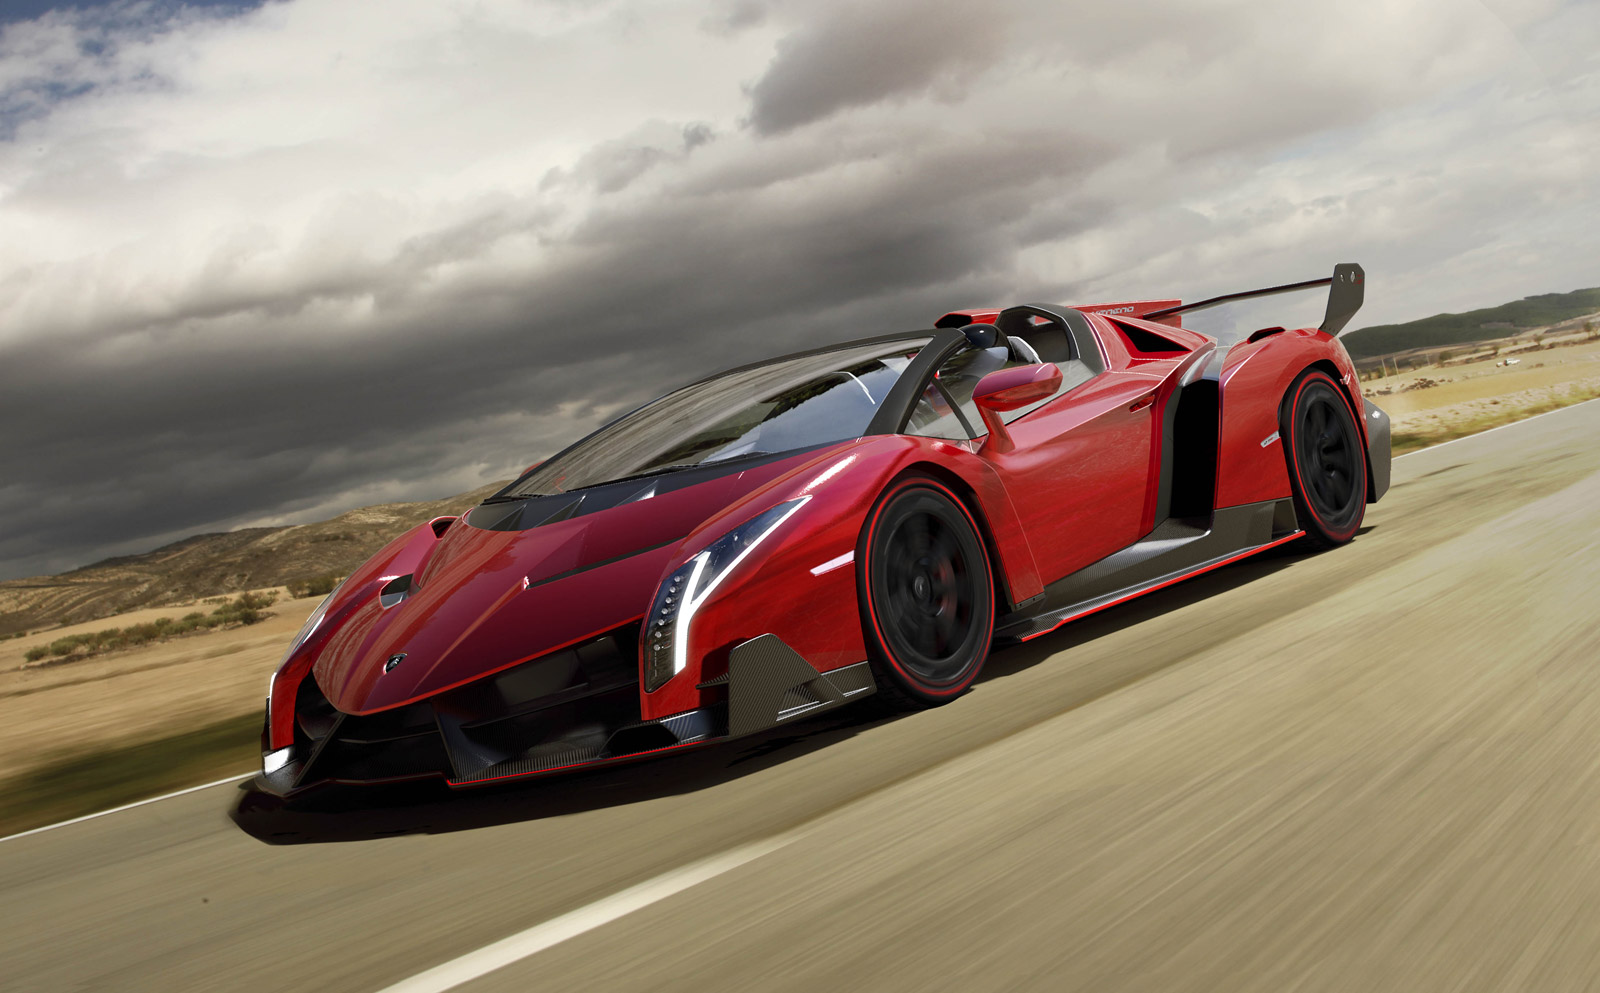 lamborghini veneno roadster for sale: just $7.4 million